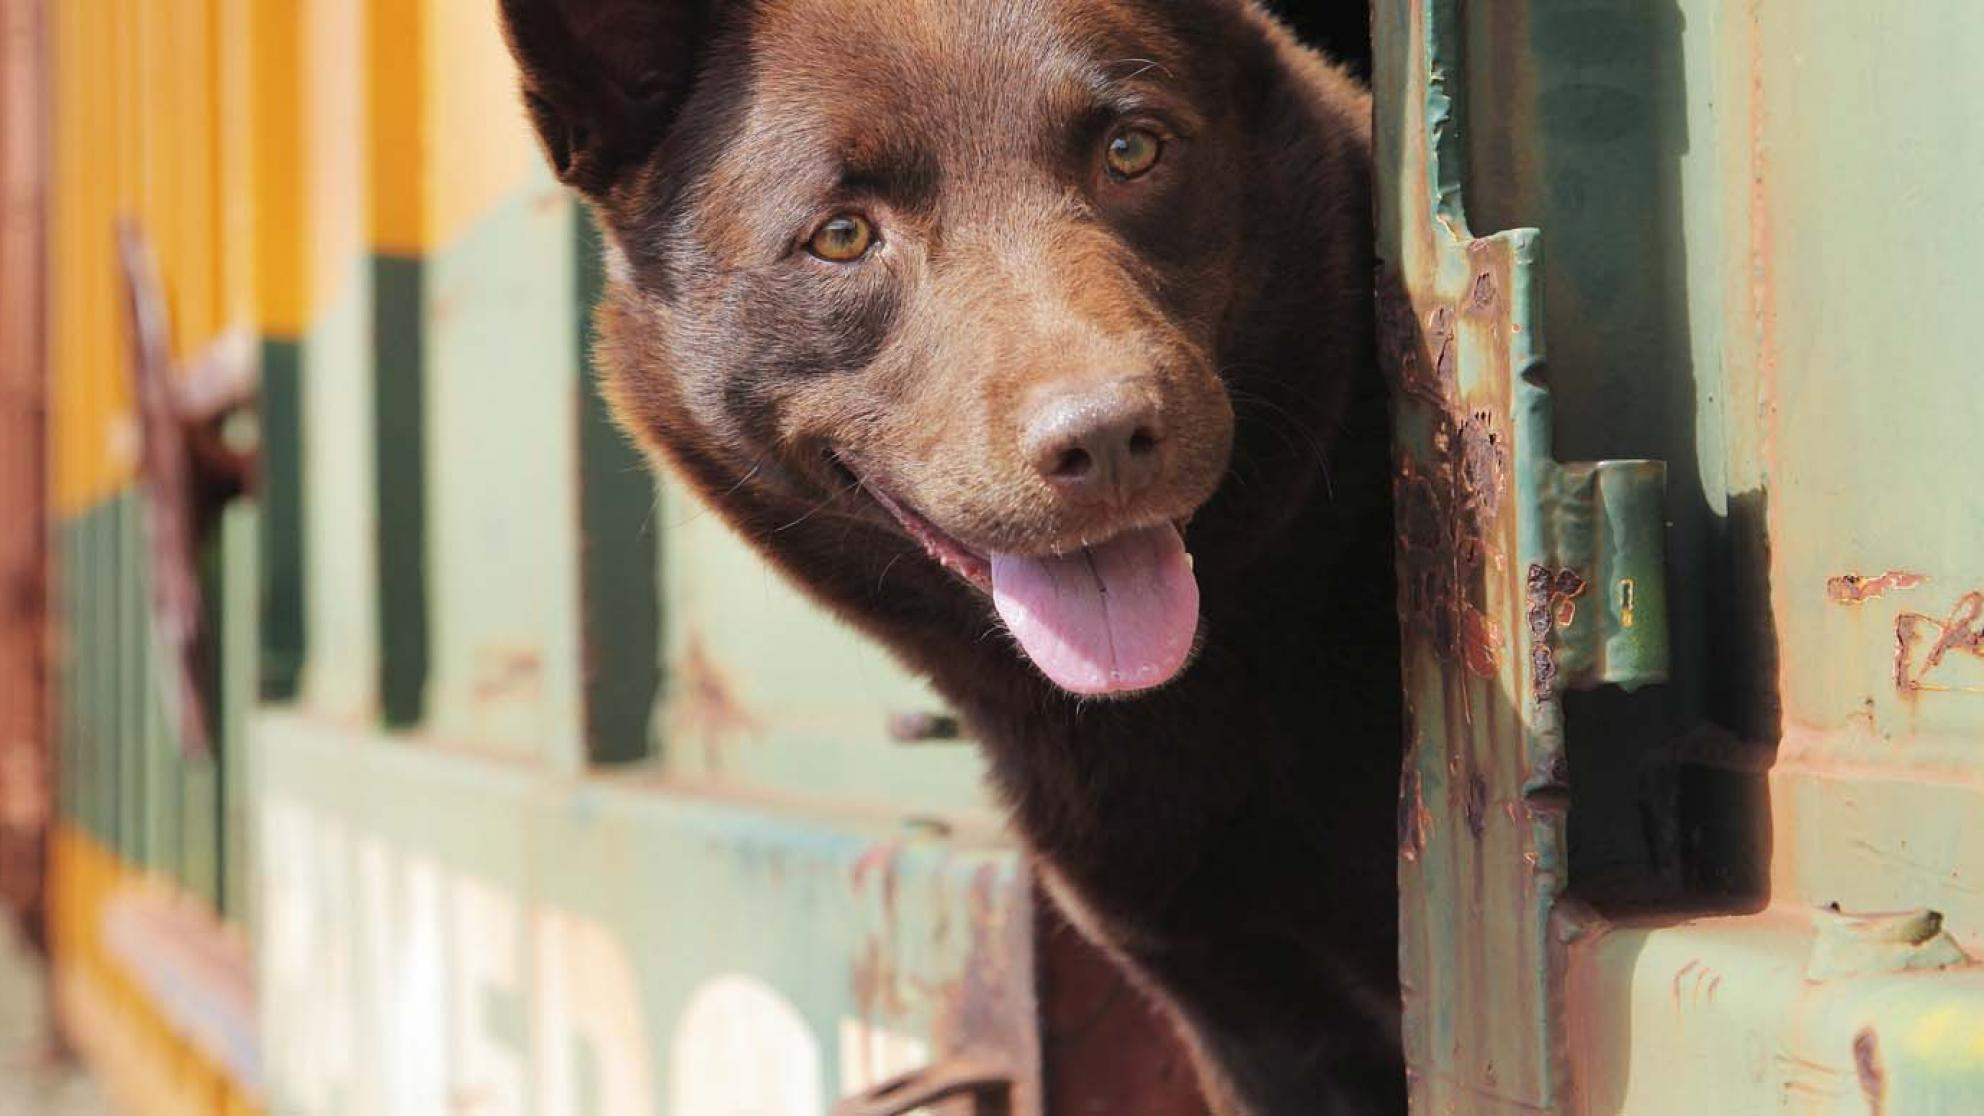 Red Dog, a kelpie-cattle dog cross, pokes his head out of the window of a travelling train